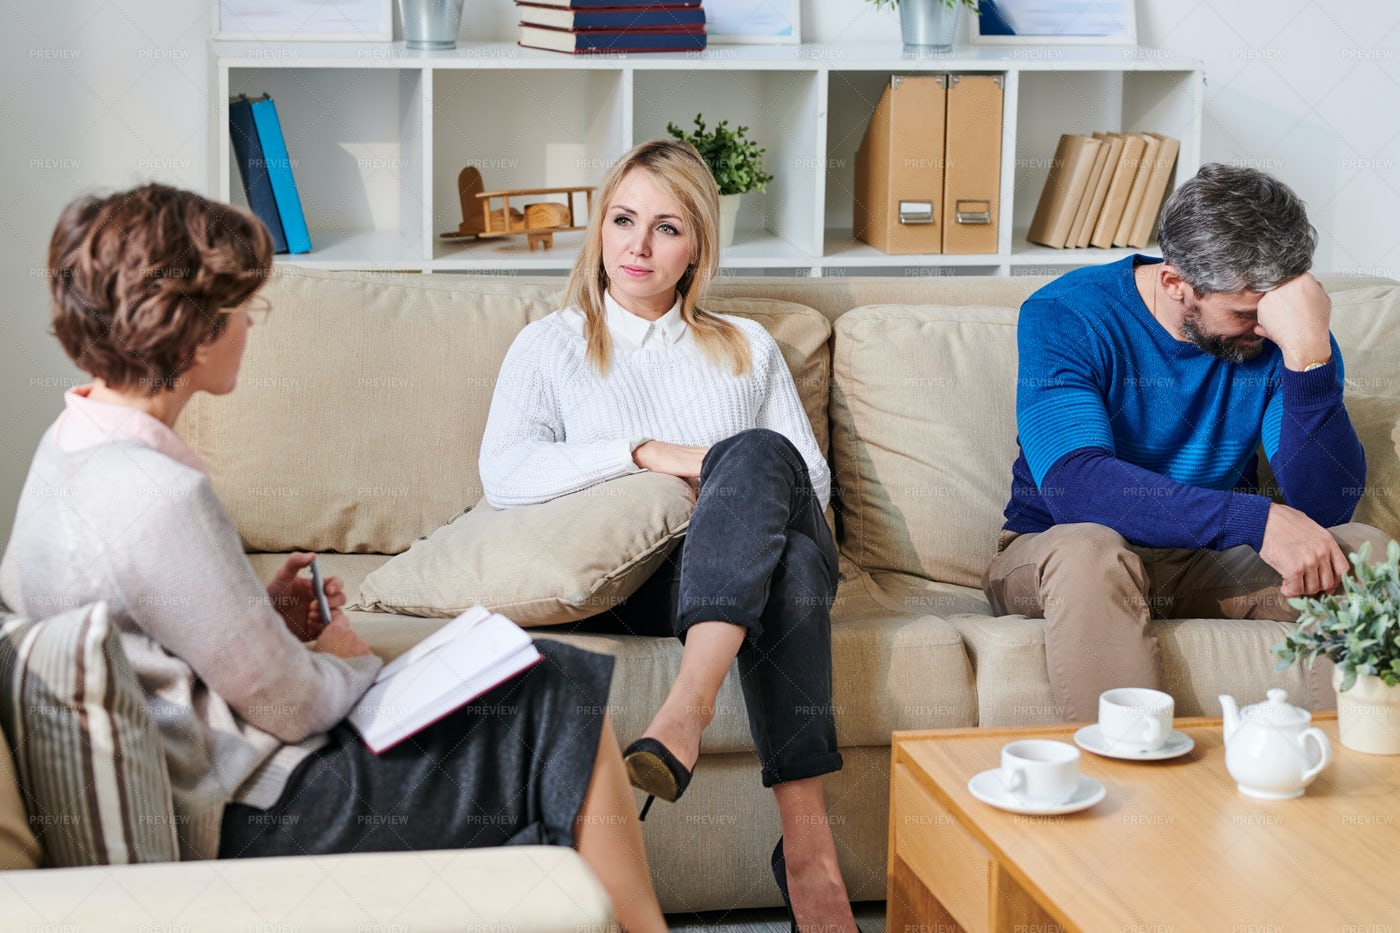 Young Couple On Verge Of Divorce: Stock Photos